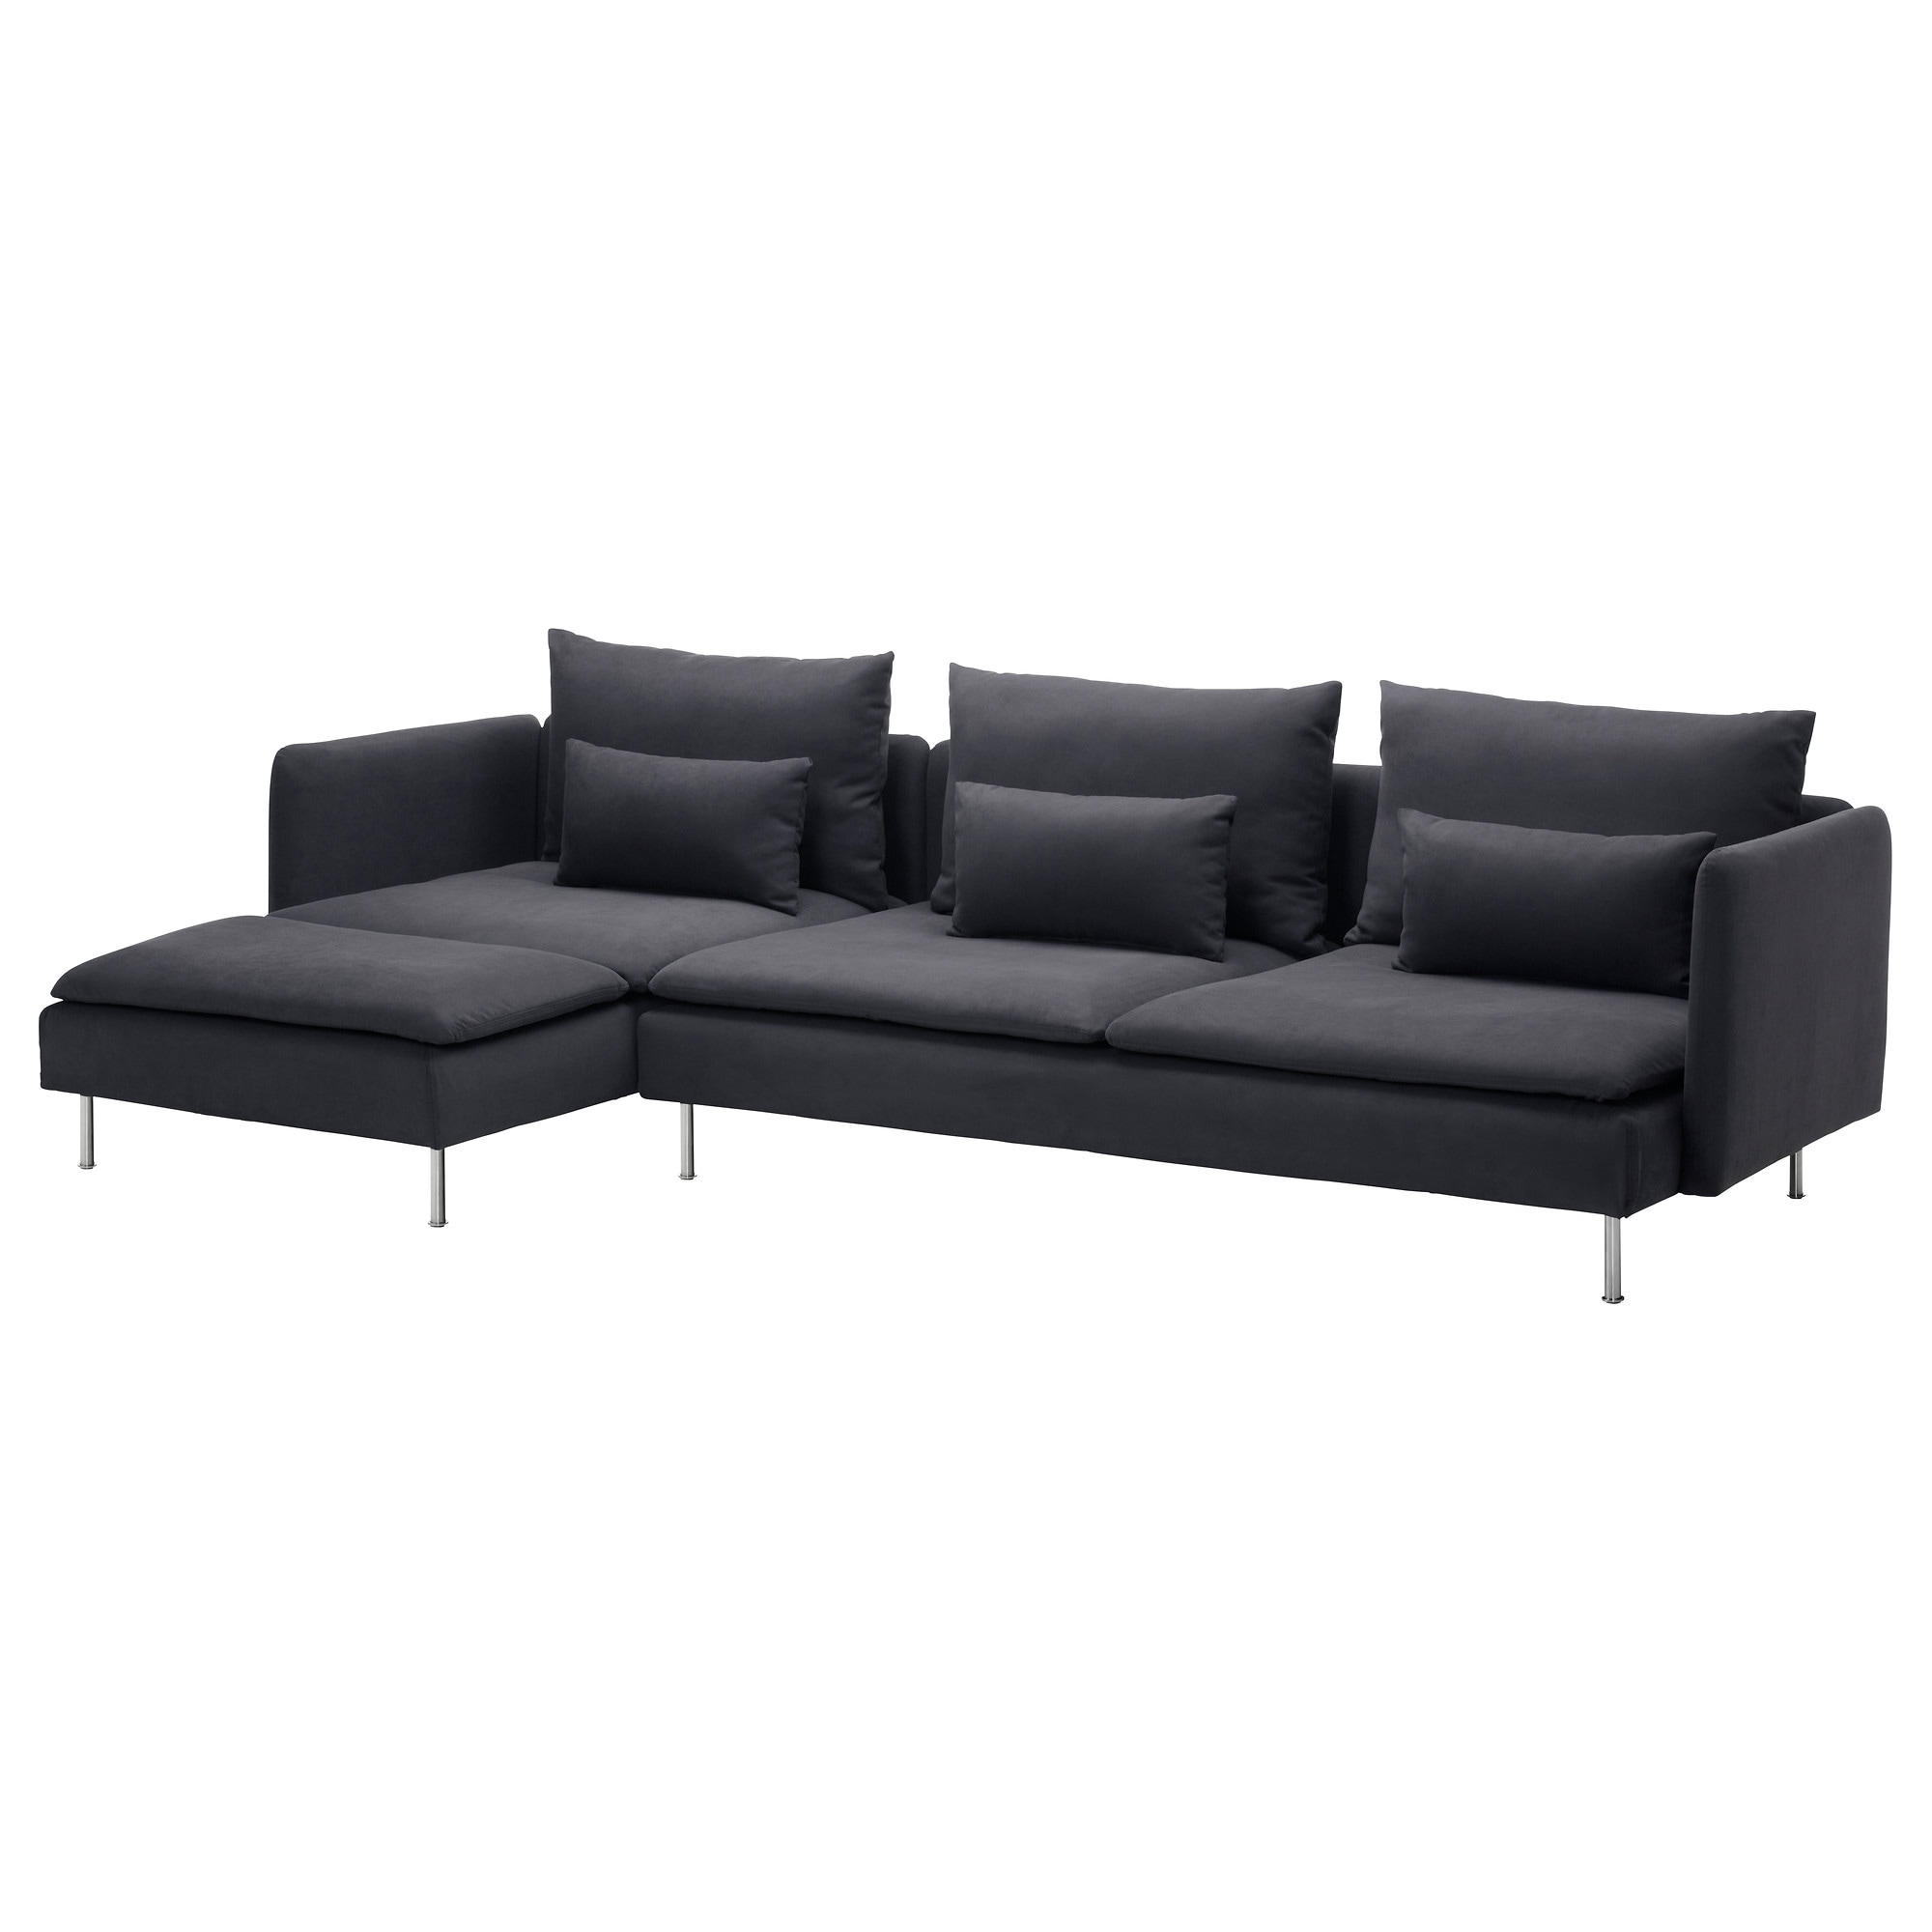 S–DERHAMN Sectional 4 seat Samsta dark gray IKEA